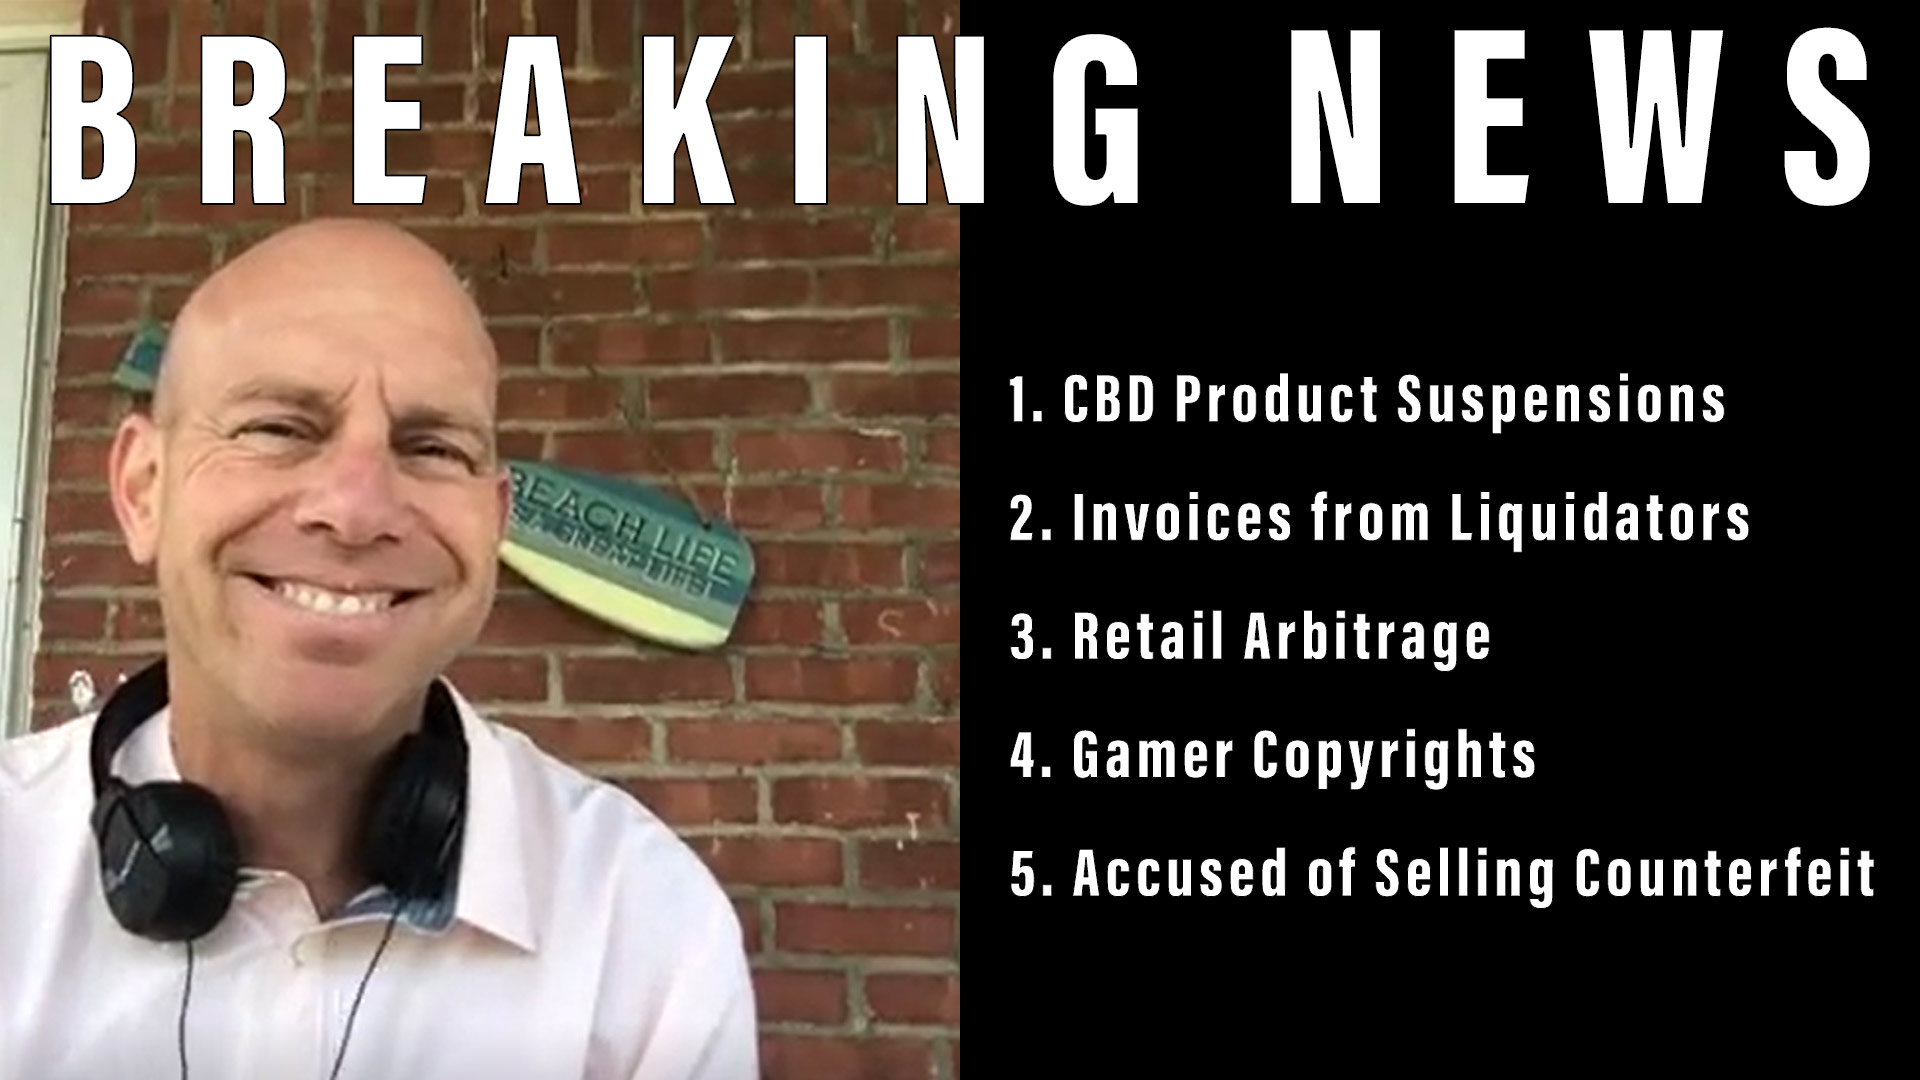 Amazon Sellers News - CBD Product Suspensions, Gamer Copyrights, Accused of Selling Counterfeit, Retail Arbitrage, Invoices from Liquidators